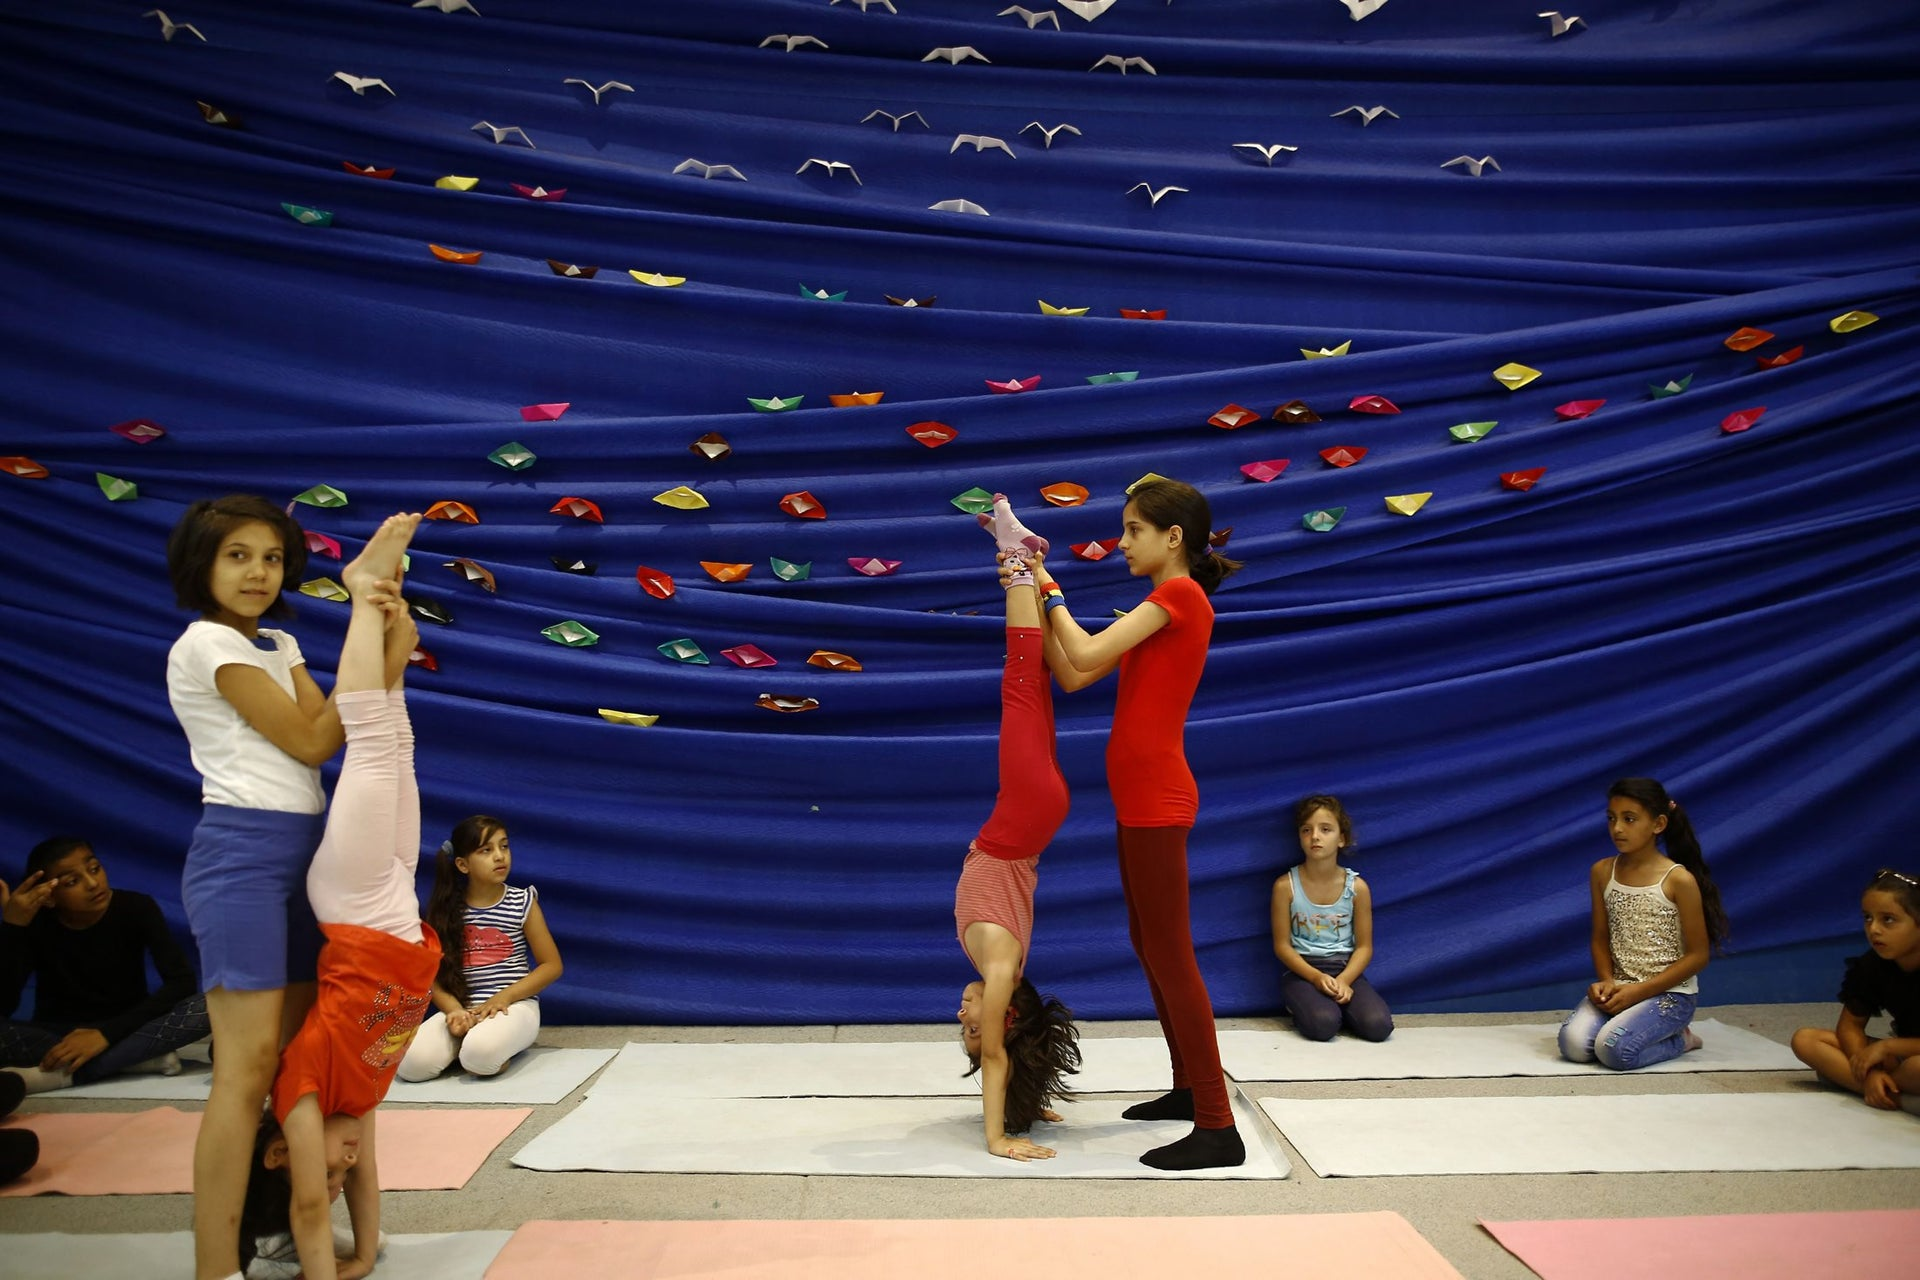 Palestinian girls take part in an acrobatics class on August 16, 2016 at the al-Qattan Cultural Center for Children in Gaza City.